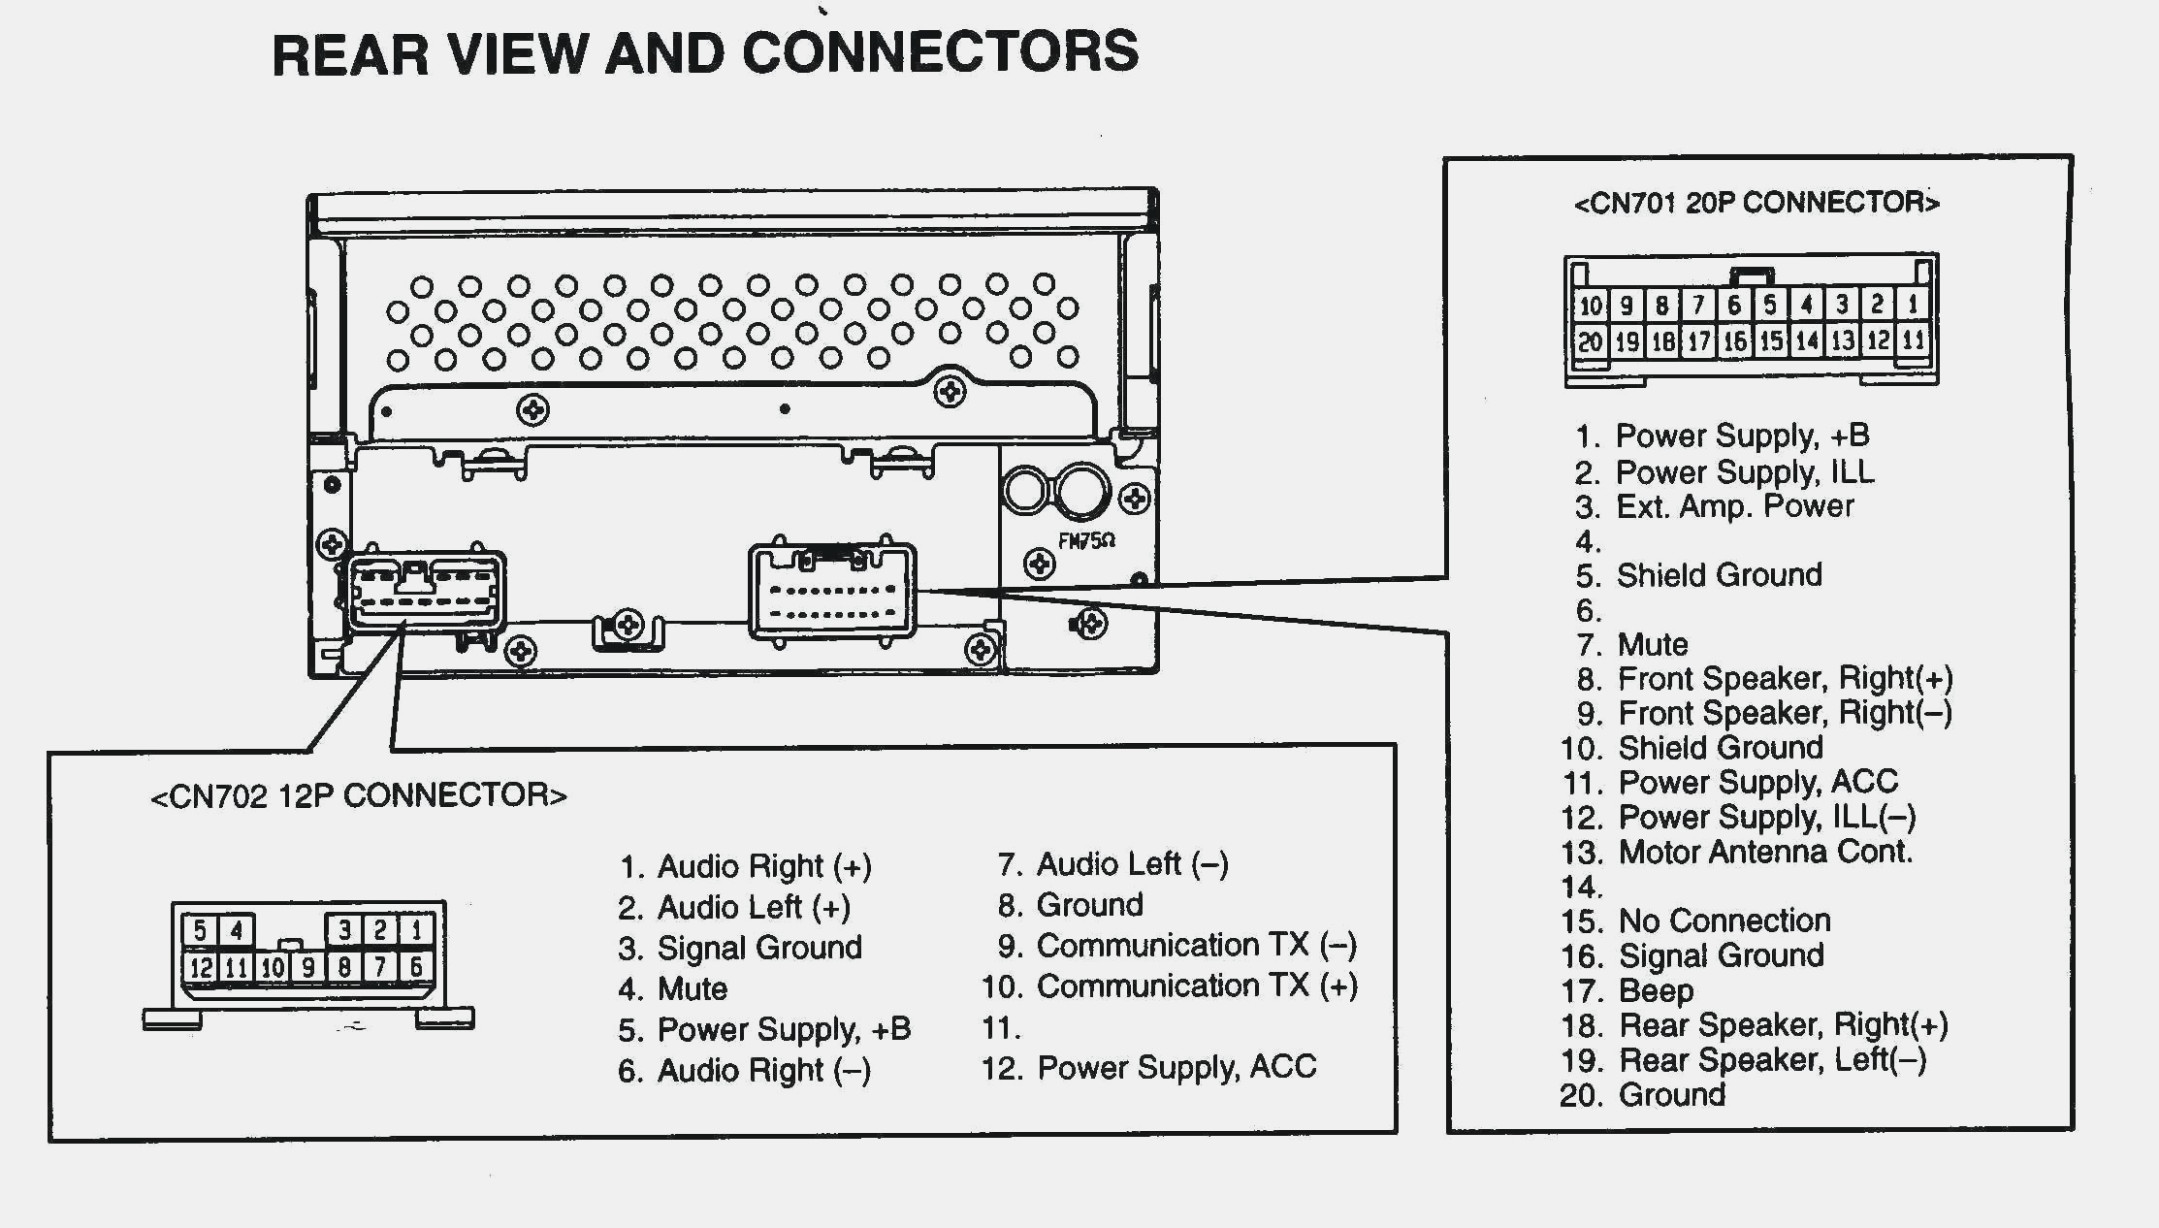 2005 Toyota Prius Speaker Wiring Diagram Wiring Diagrams Exclude A Exclude A Miglioribanche It